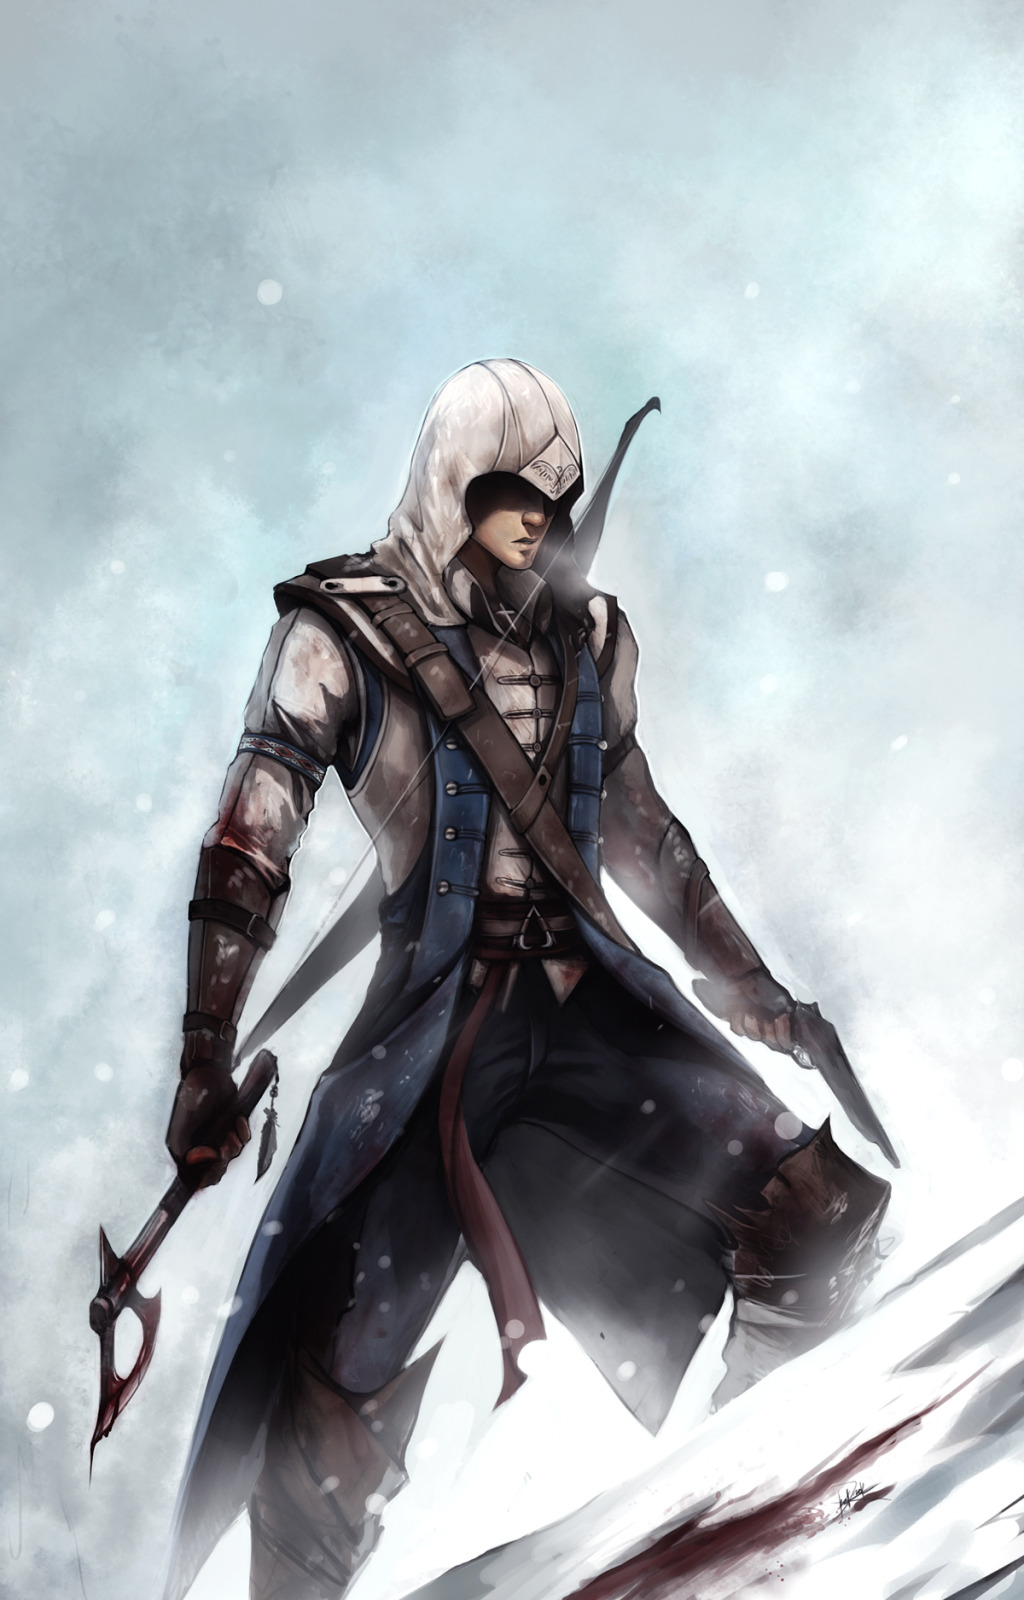 Connor Kenway Ratohnhake Ton Assassin S Creed Iii Zerochan